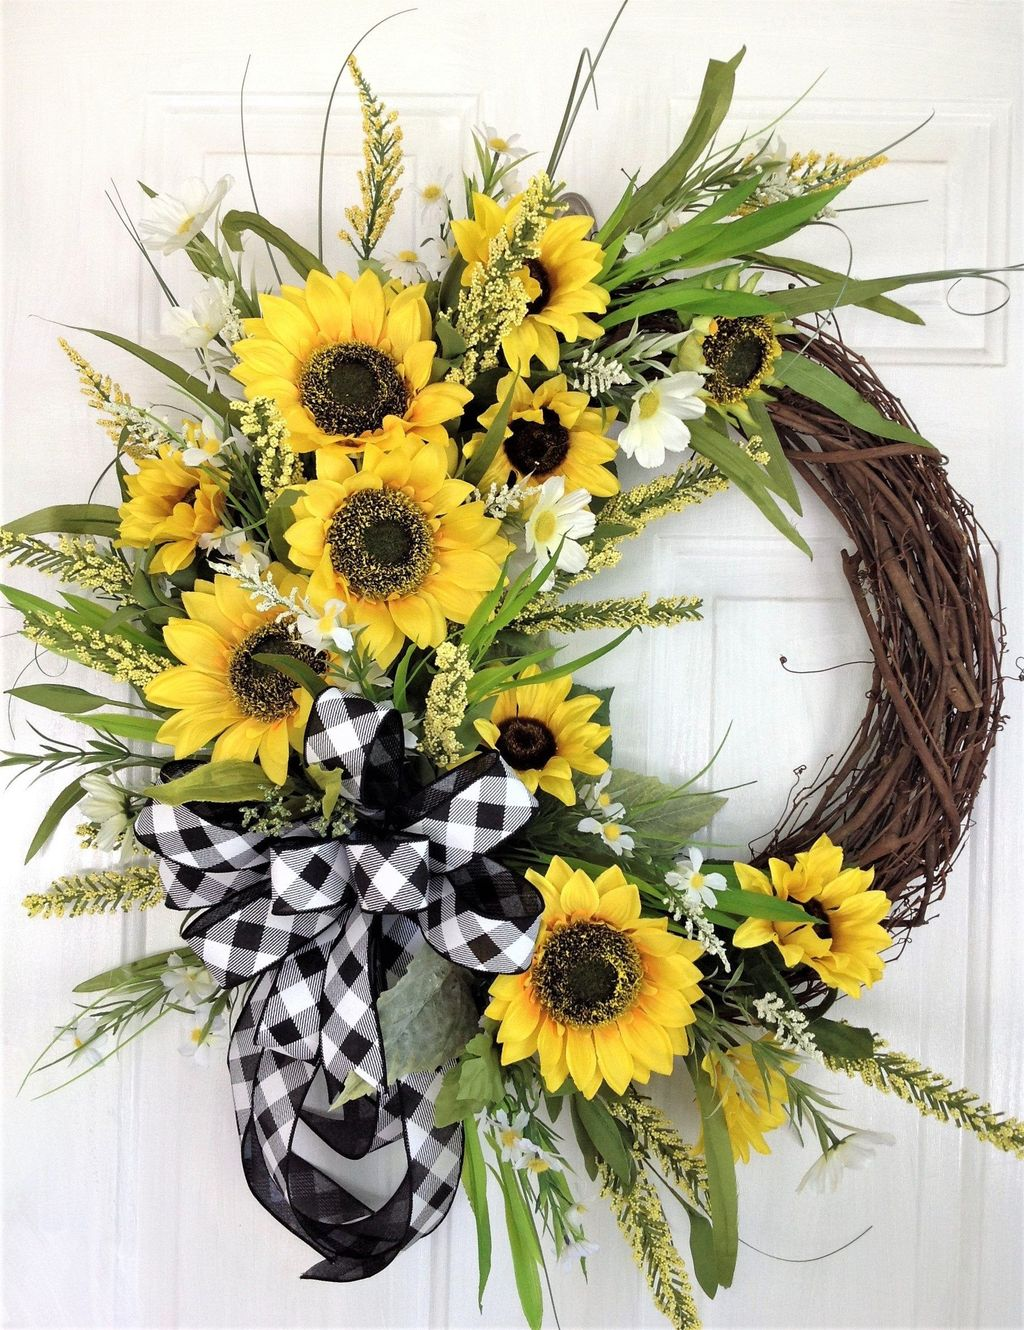 Inspiring Summer Wreath Design Ideas You Should Copy 15